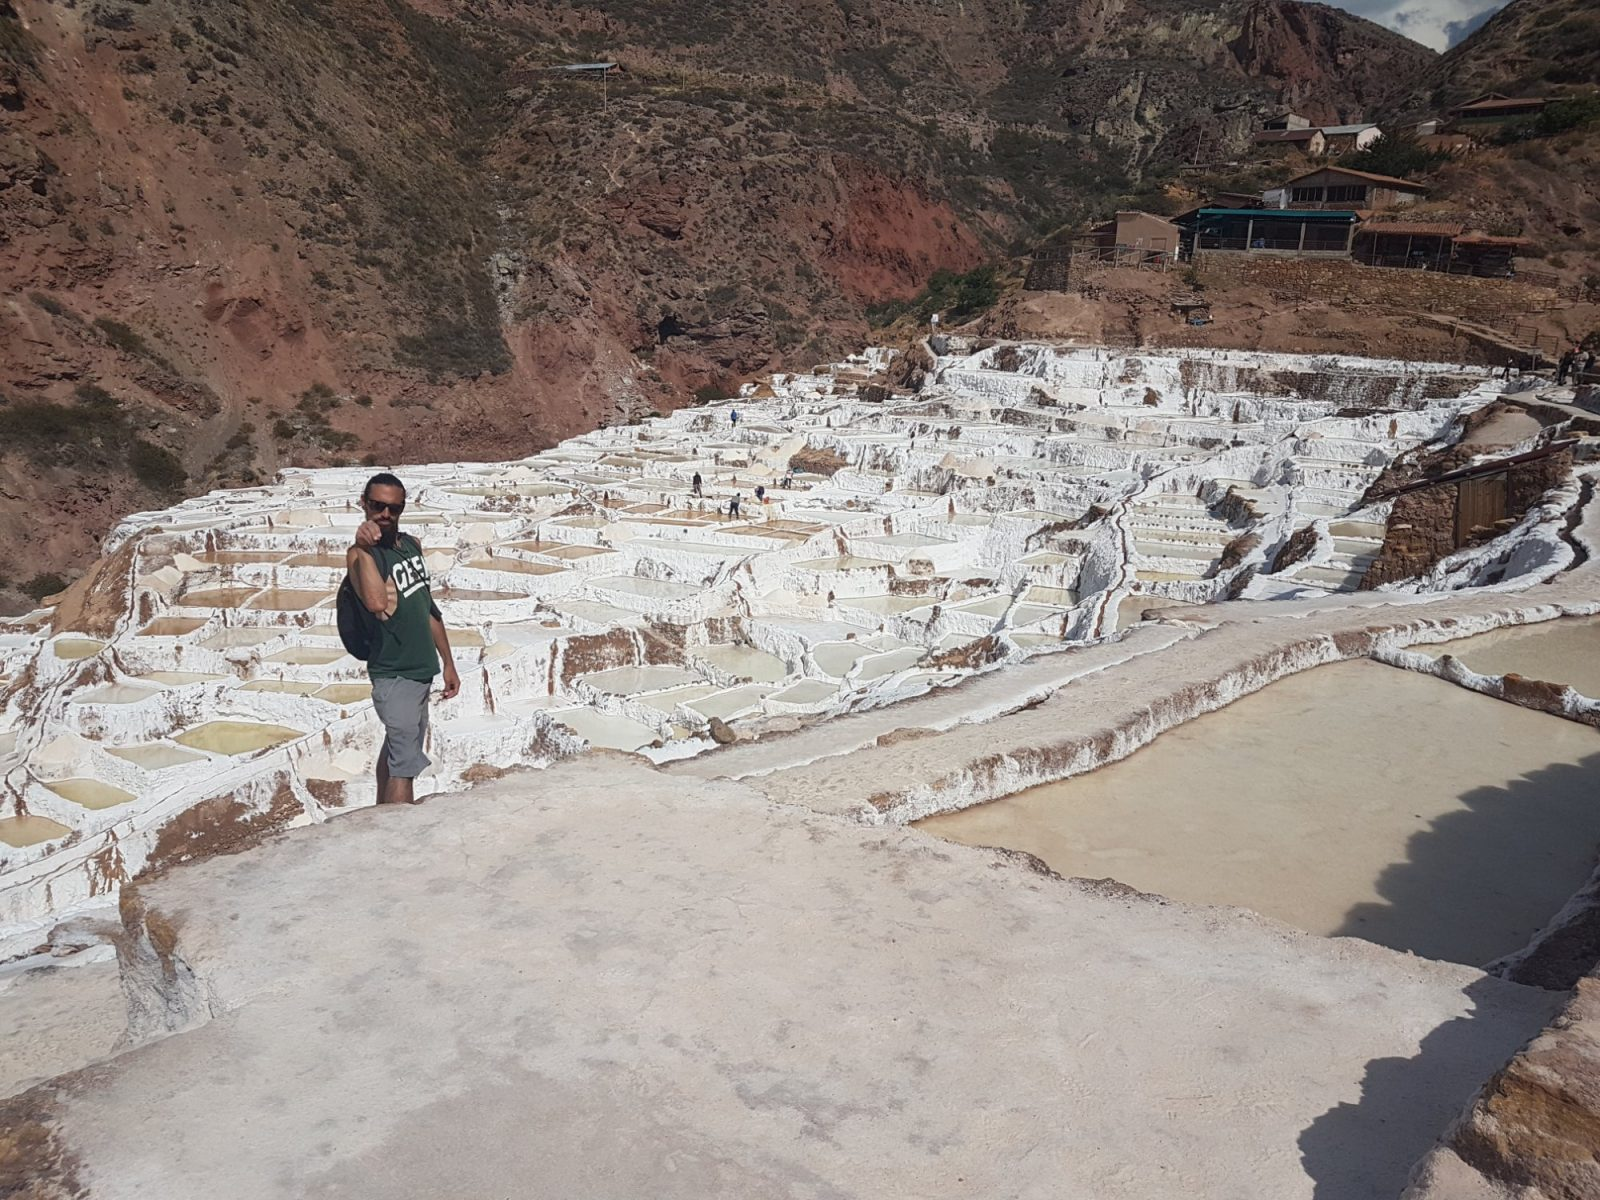 """<img src=""""images/"""" width=""""800"""" height=""""600"""" alt=""""sacred valley - 20171007 1429362126203049 - Peru: Town Hopping The Sacred Valley"""">"""